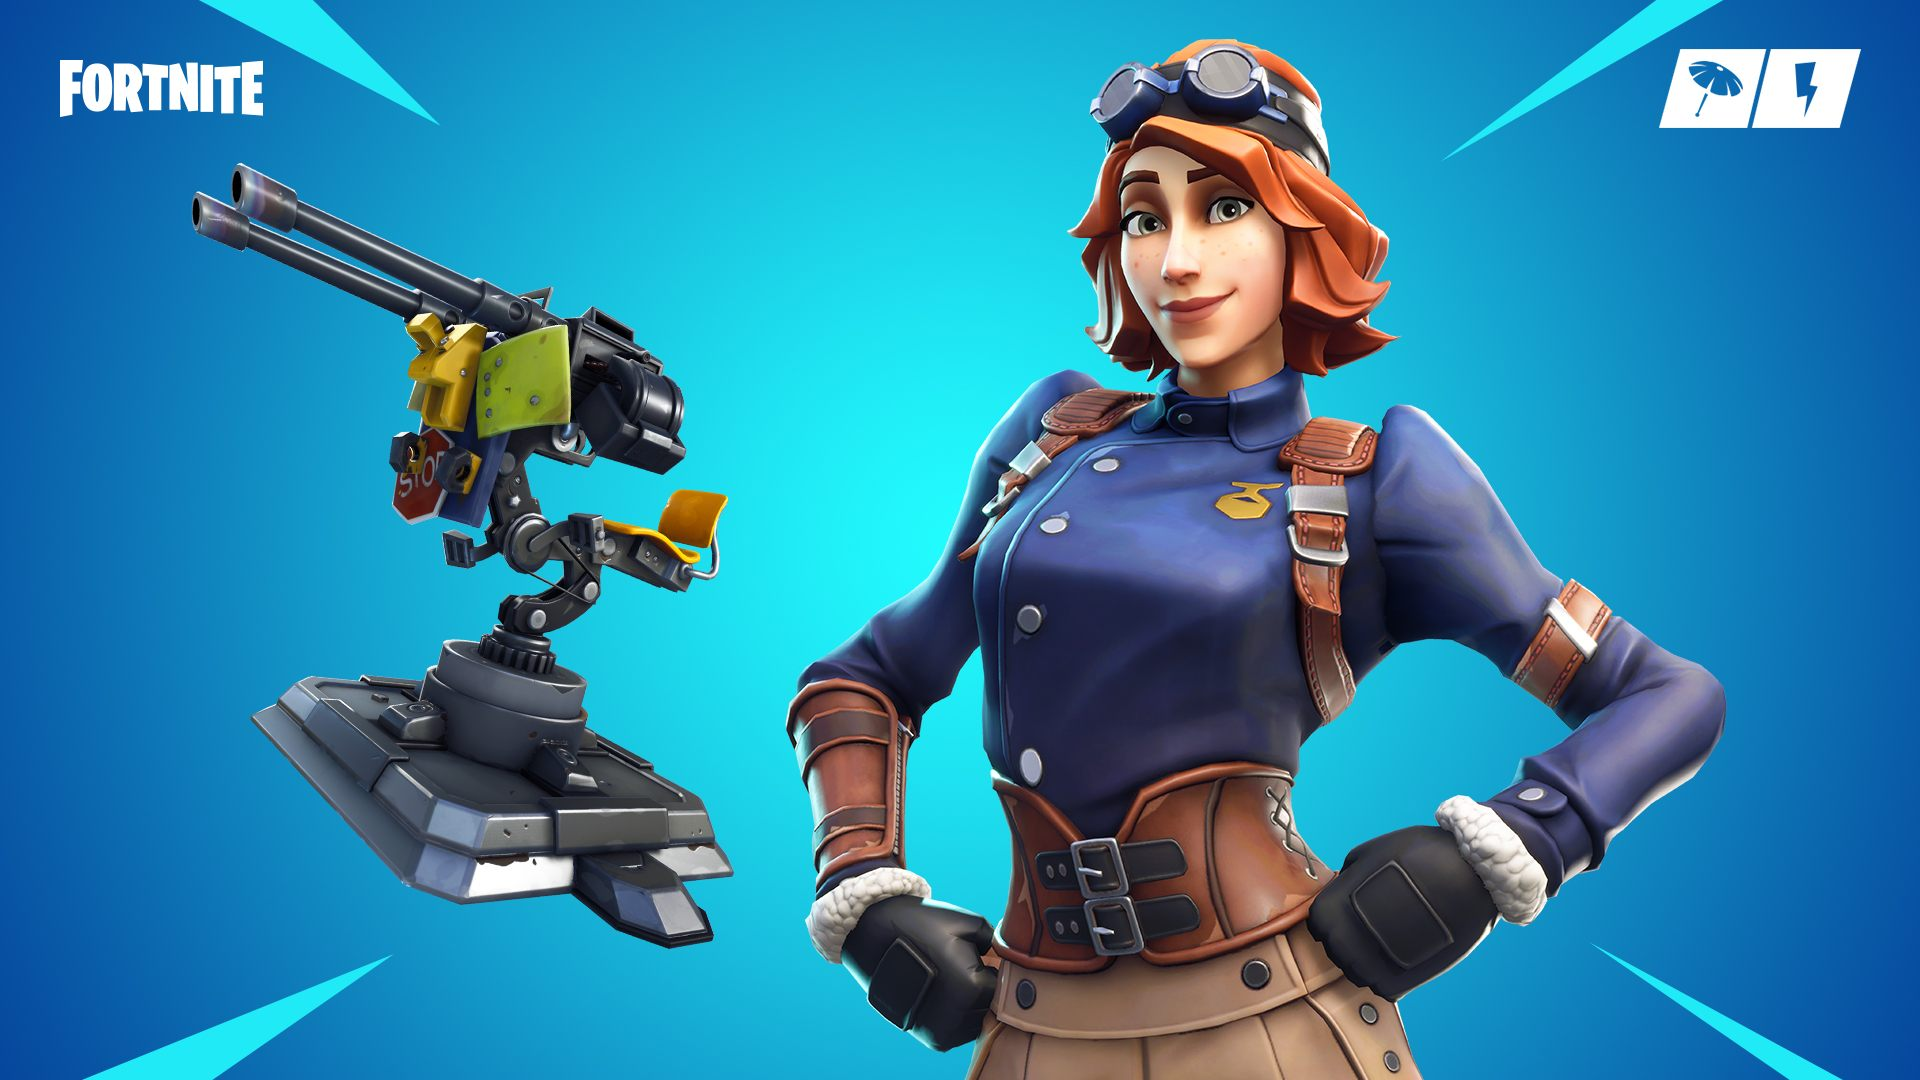 Fortnite update v6 31 patch notes detail Team Rumble LTM and